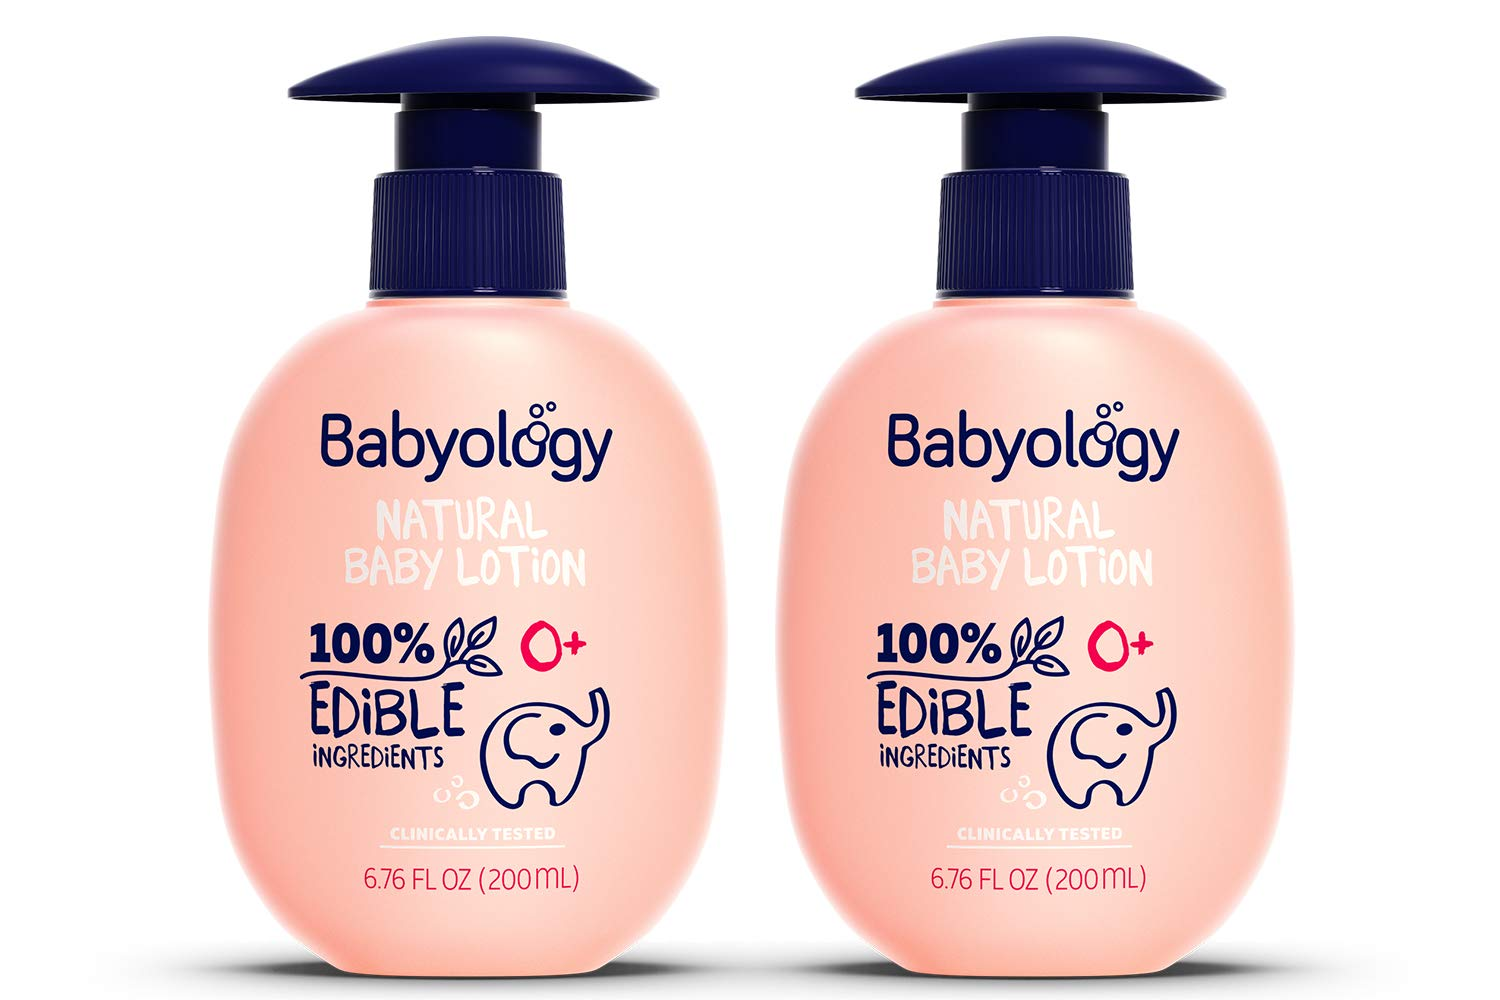 Babyology - Organic Baby Lotion - 100% Edible Ingredients - 6,76 FL. OZ - The Safest All Natural Baby Moisturizer for Newborn Dry and Sensitive Skin - Non Toxic - Eczema (2 Pack)